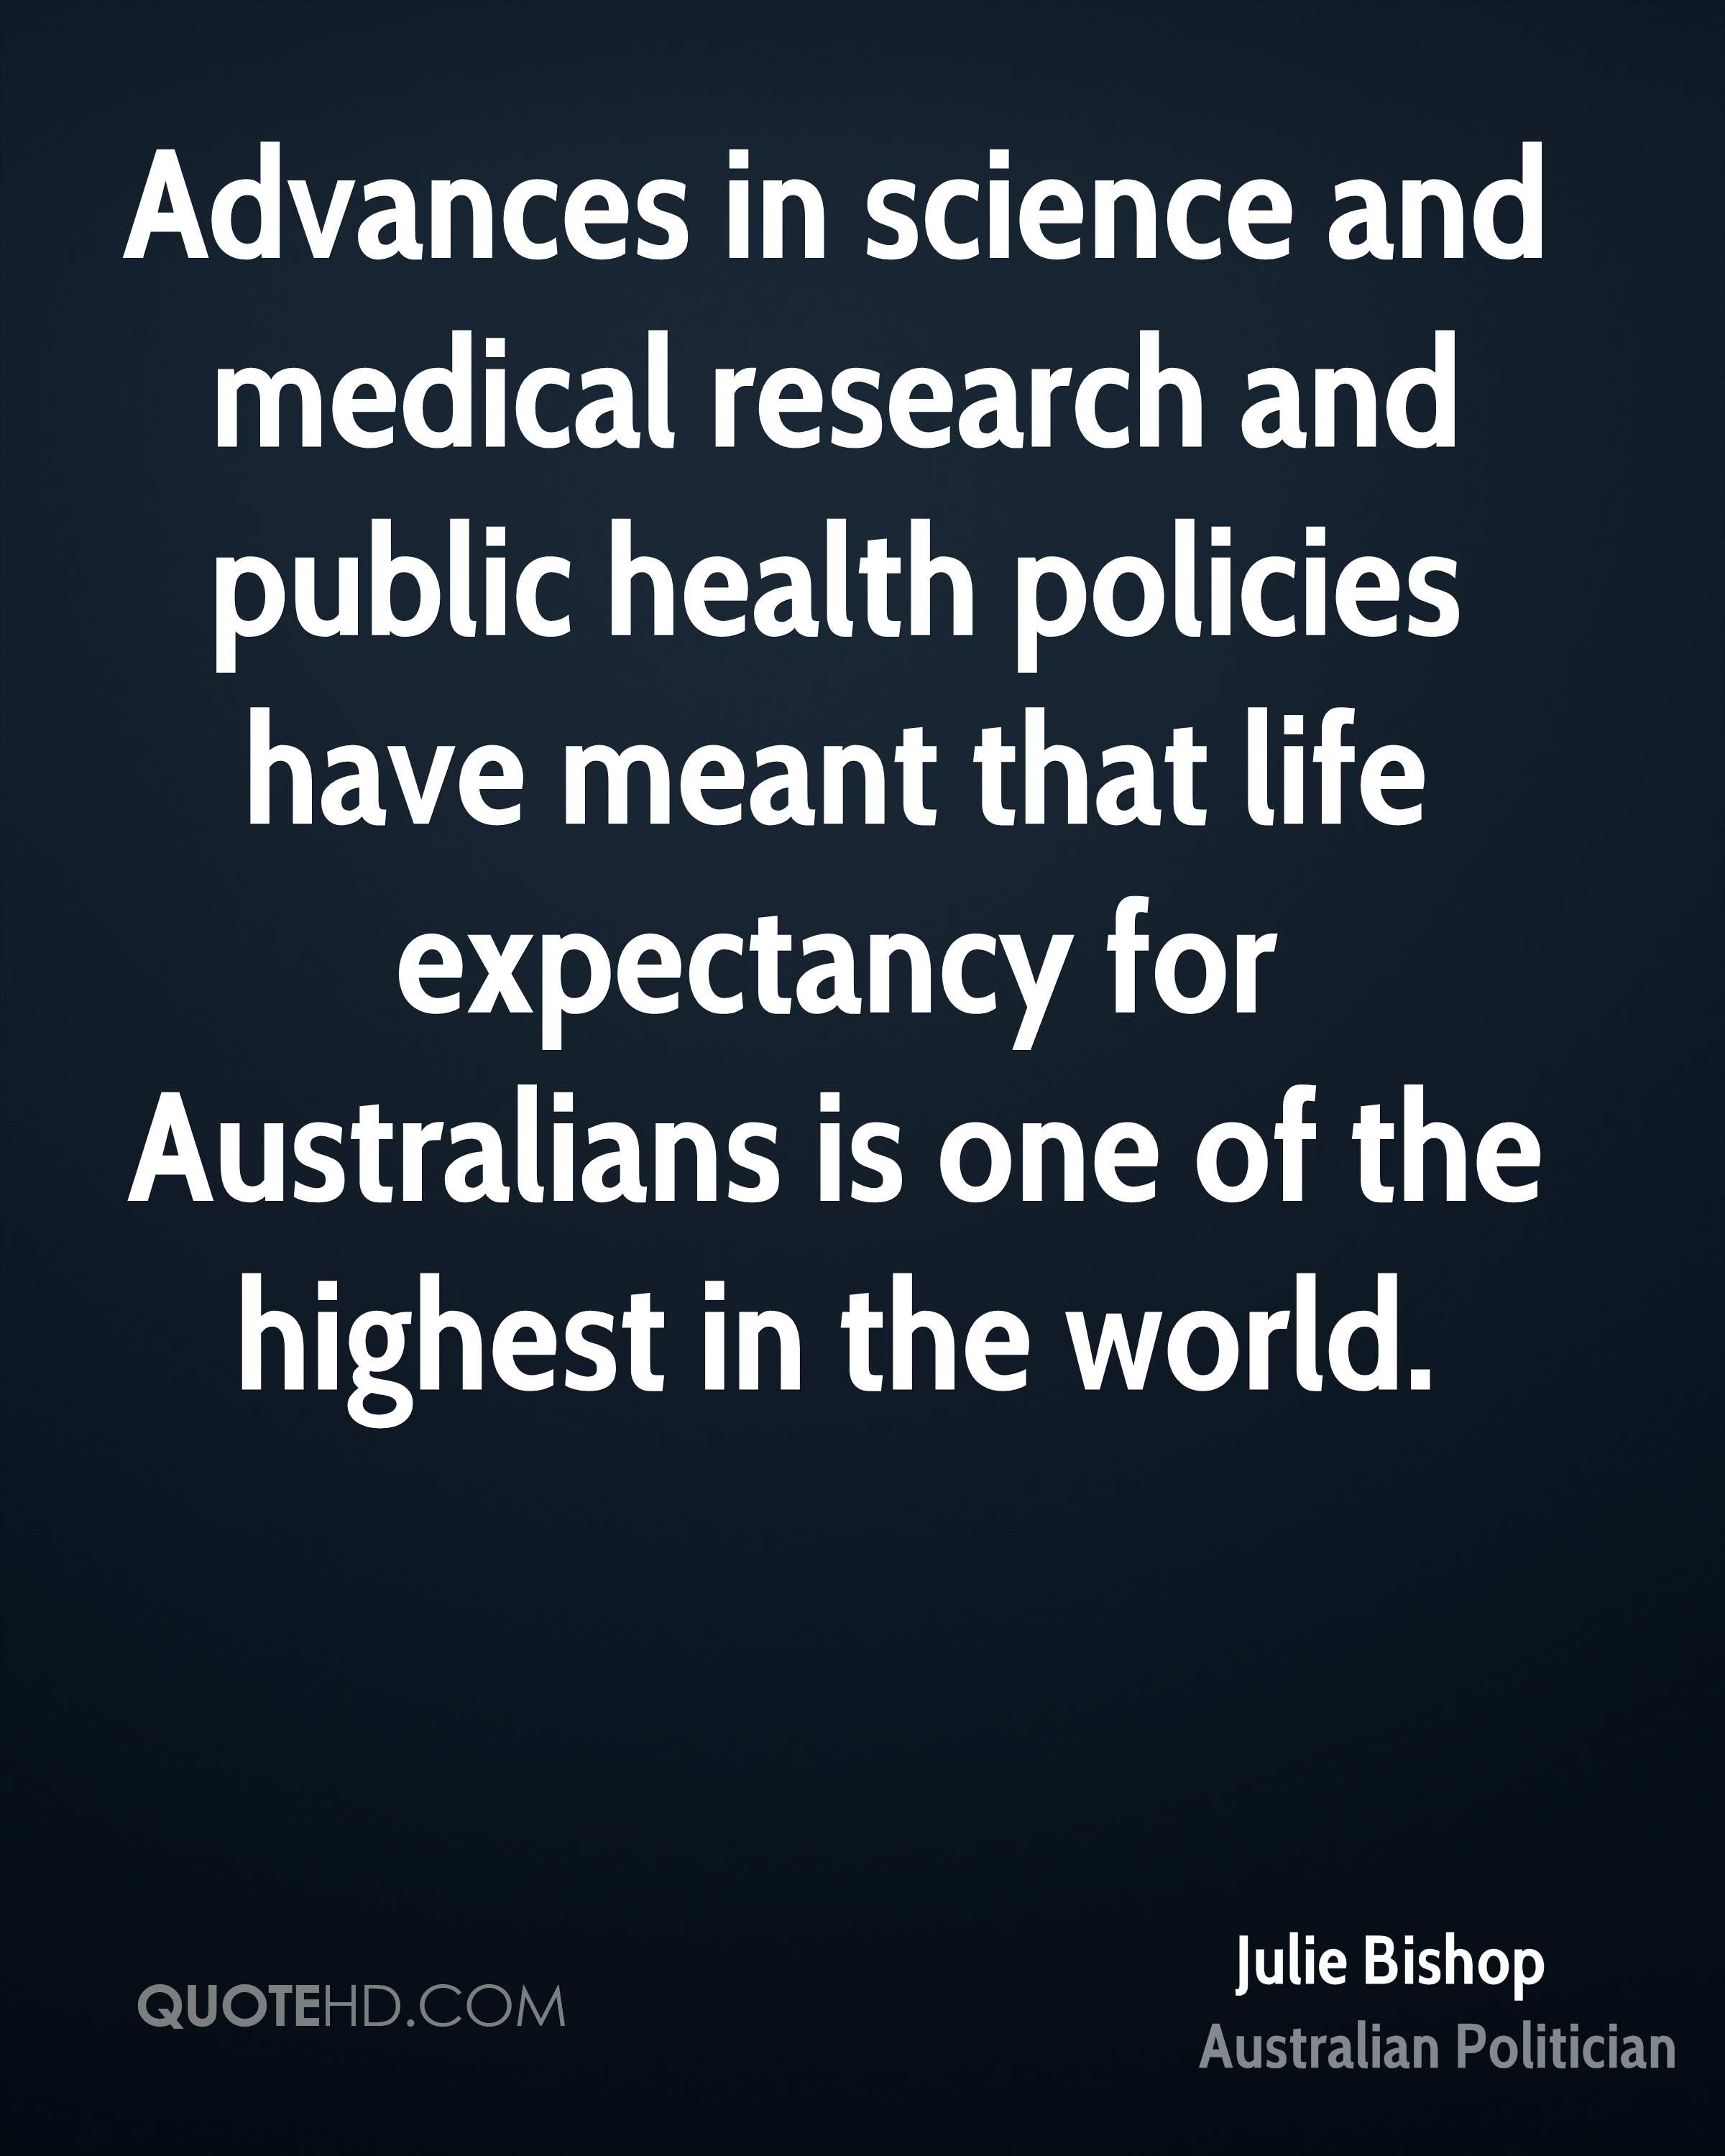 Advances in science and medical research and public health policies have meant that life expectancy for Australians is one of the highest in the world.